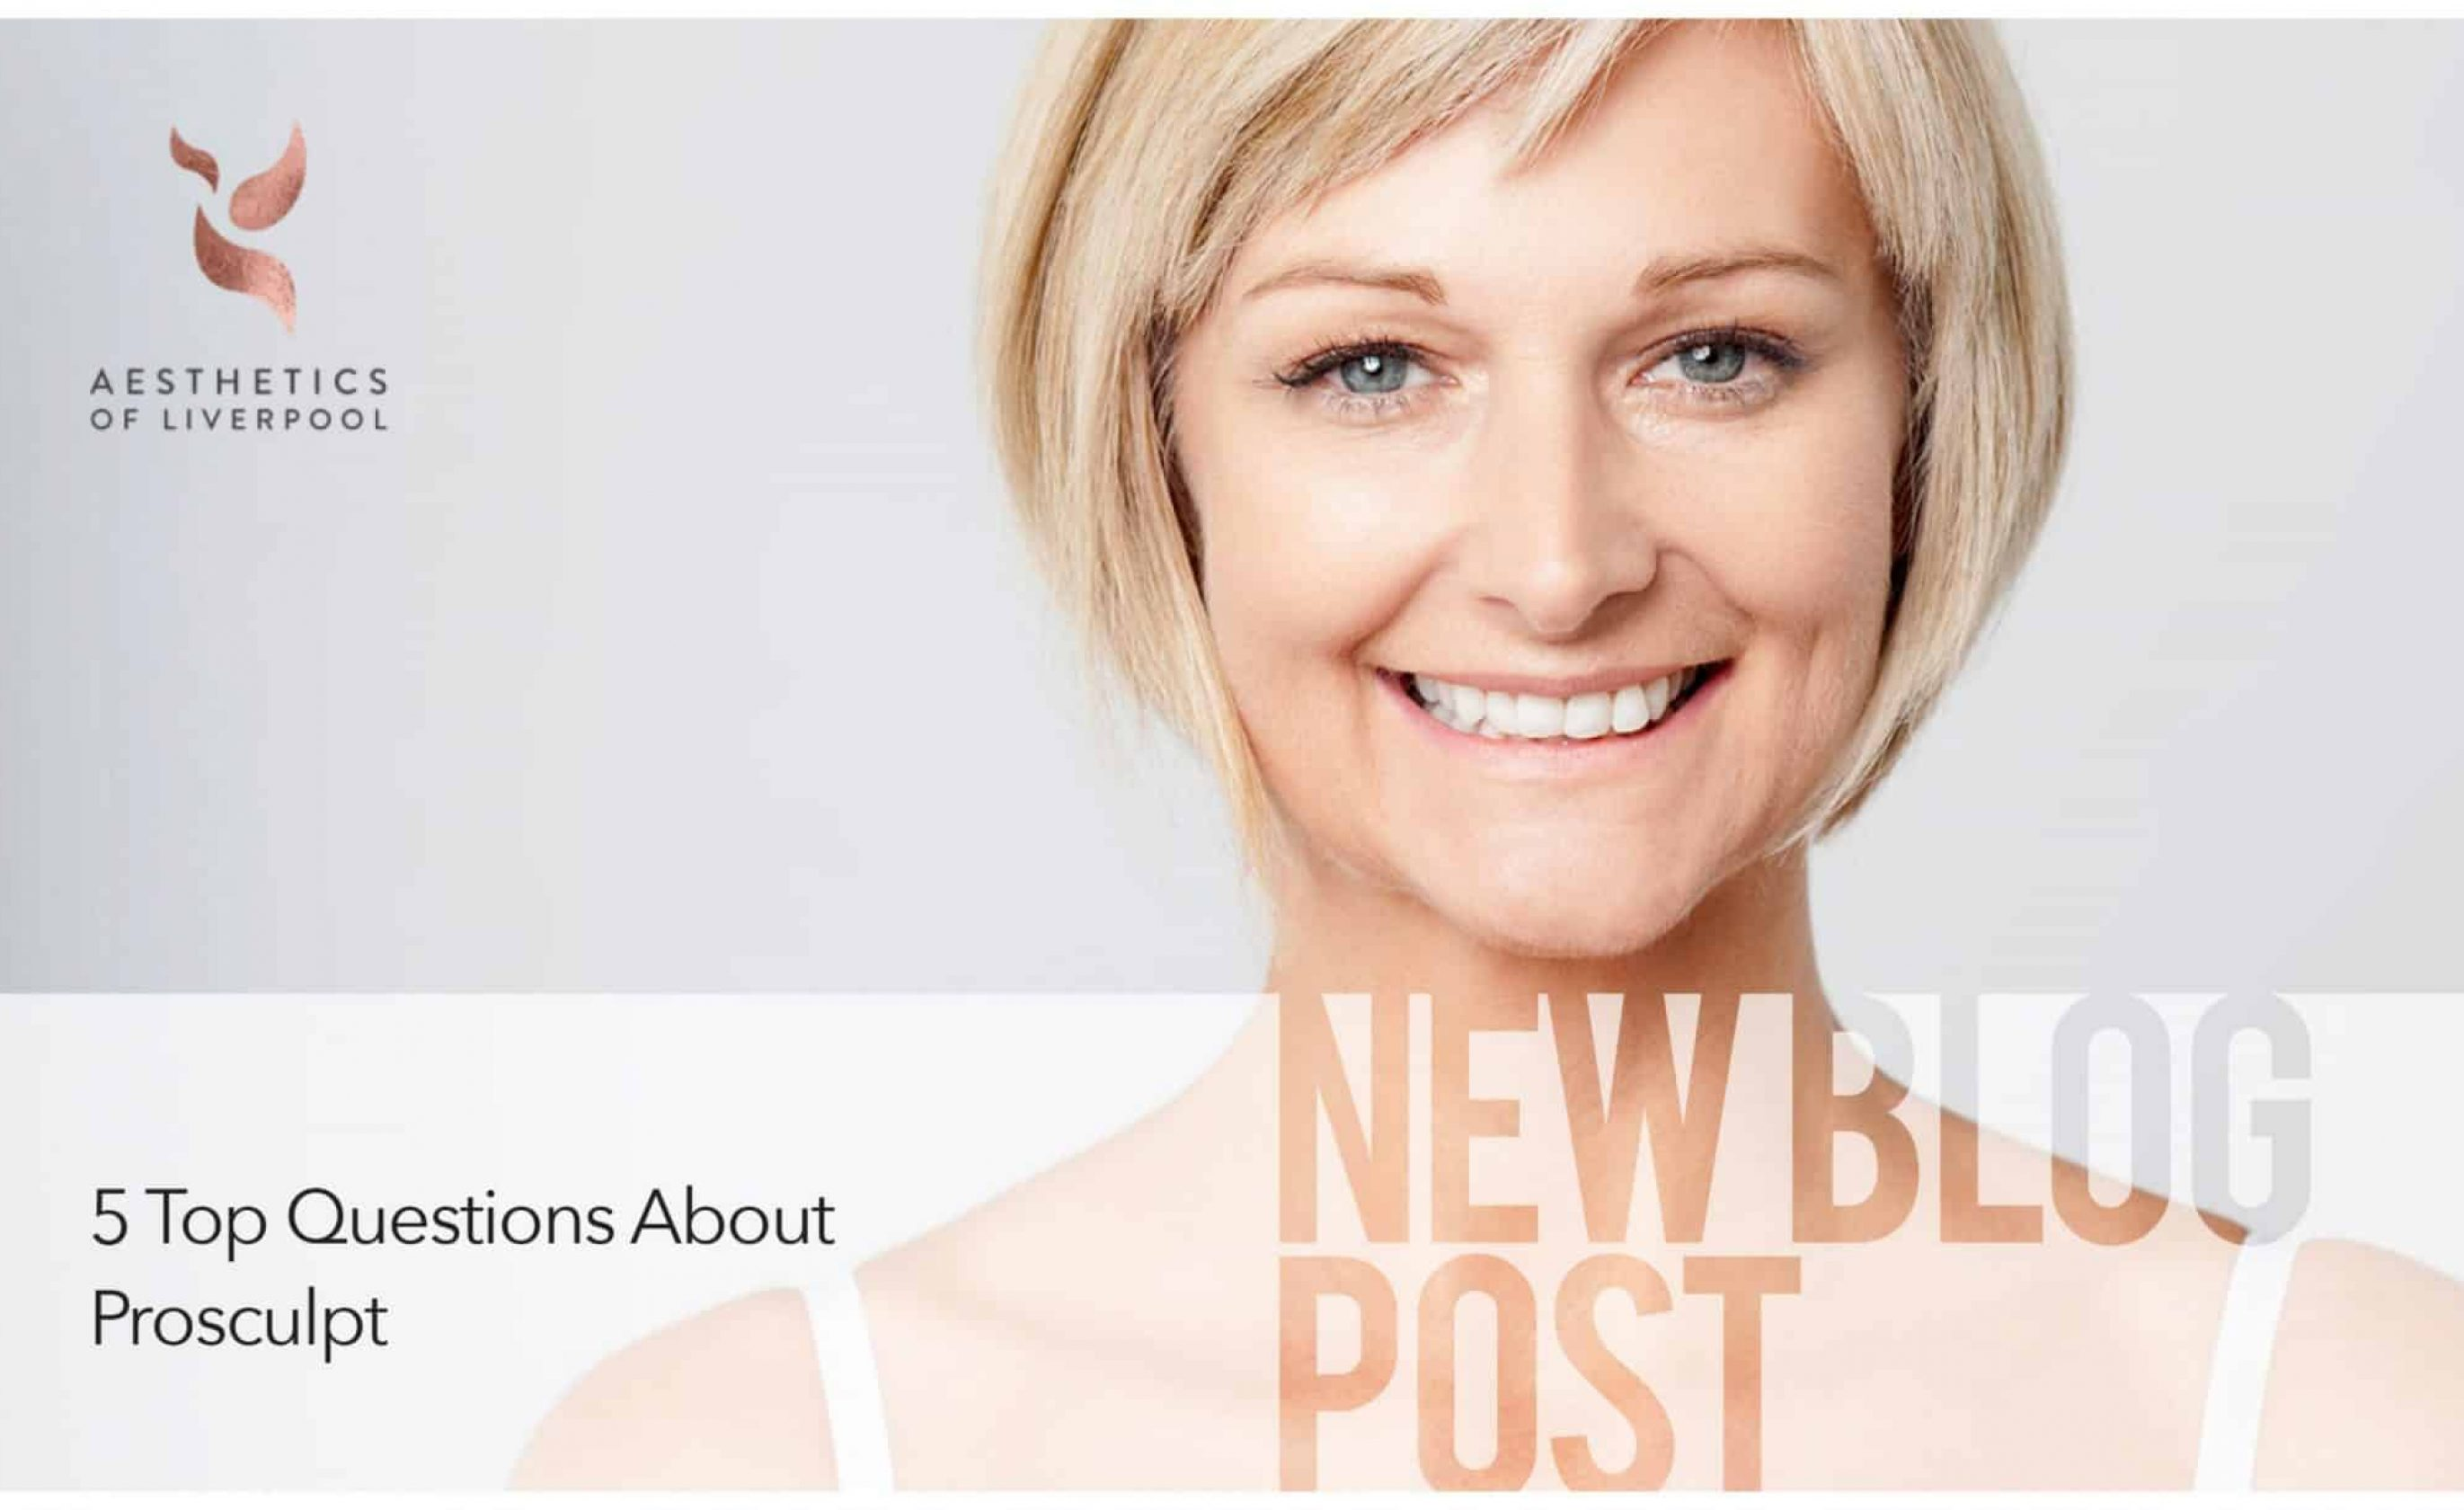 5 Top Questions About Prosculpt